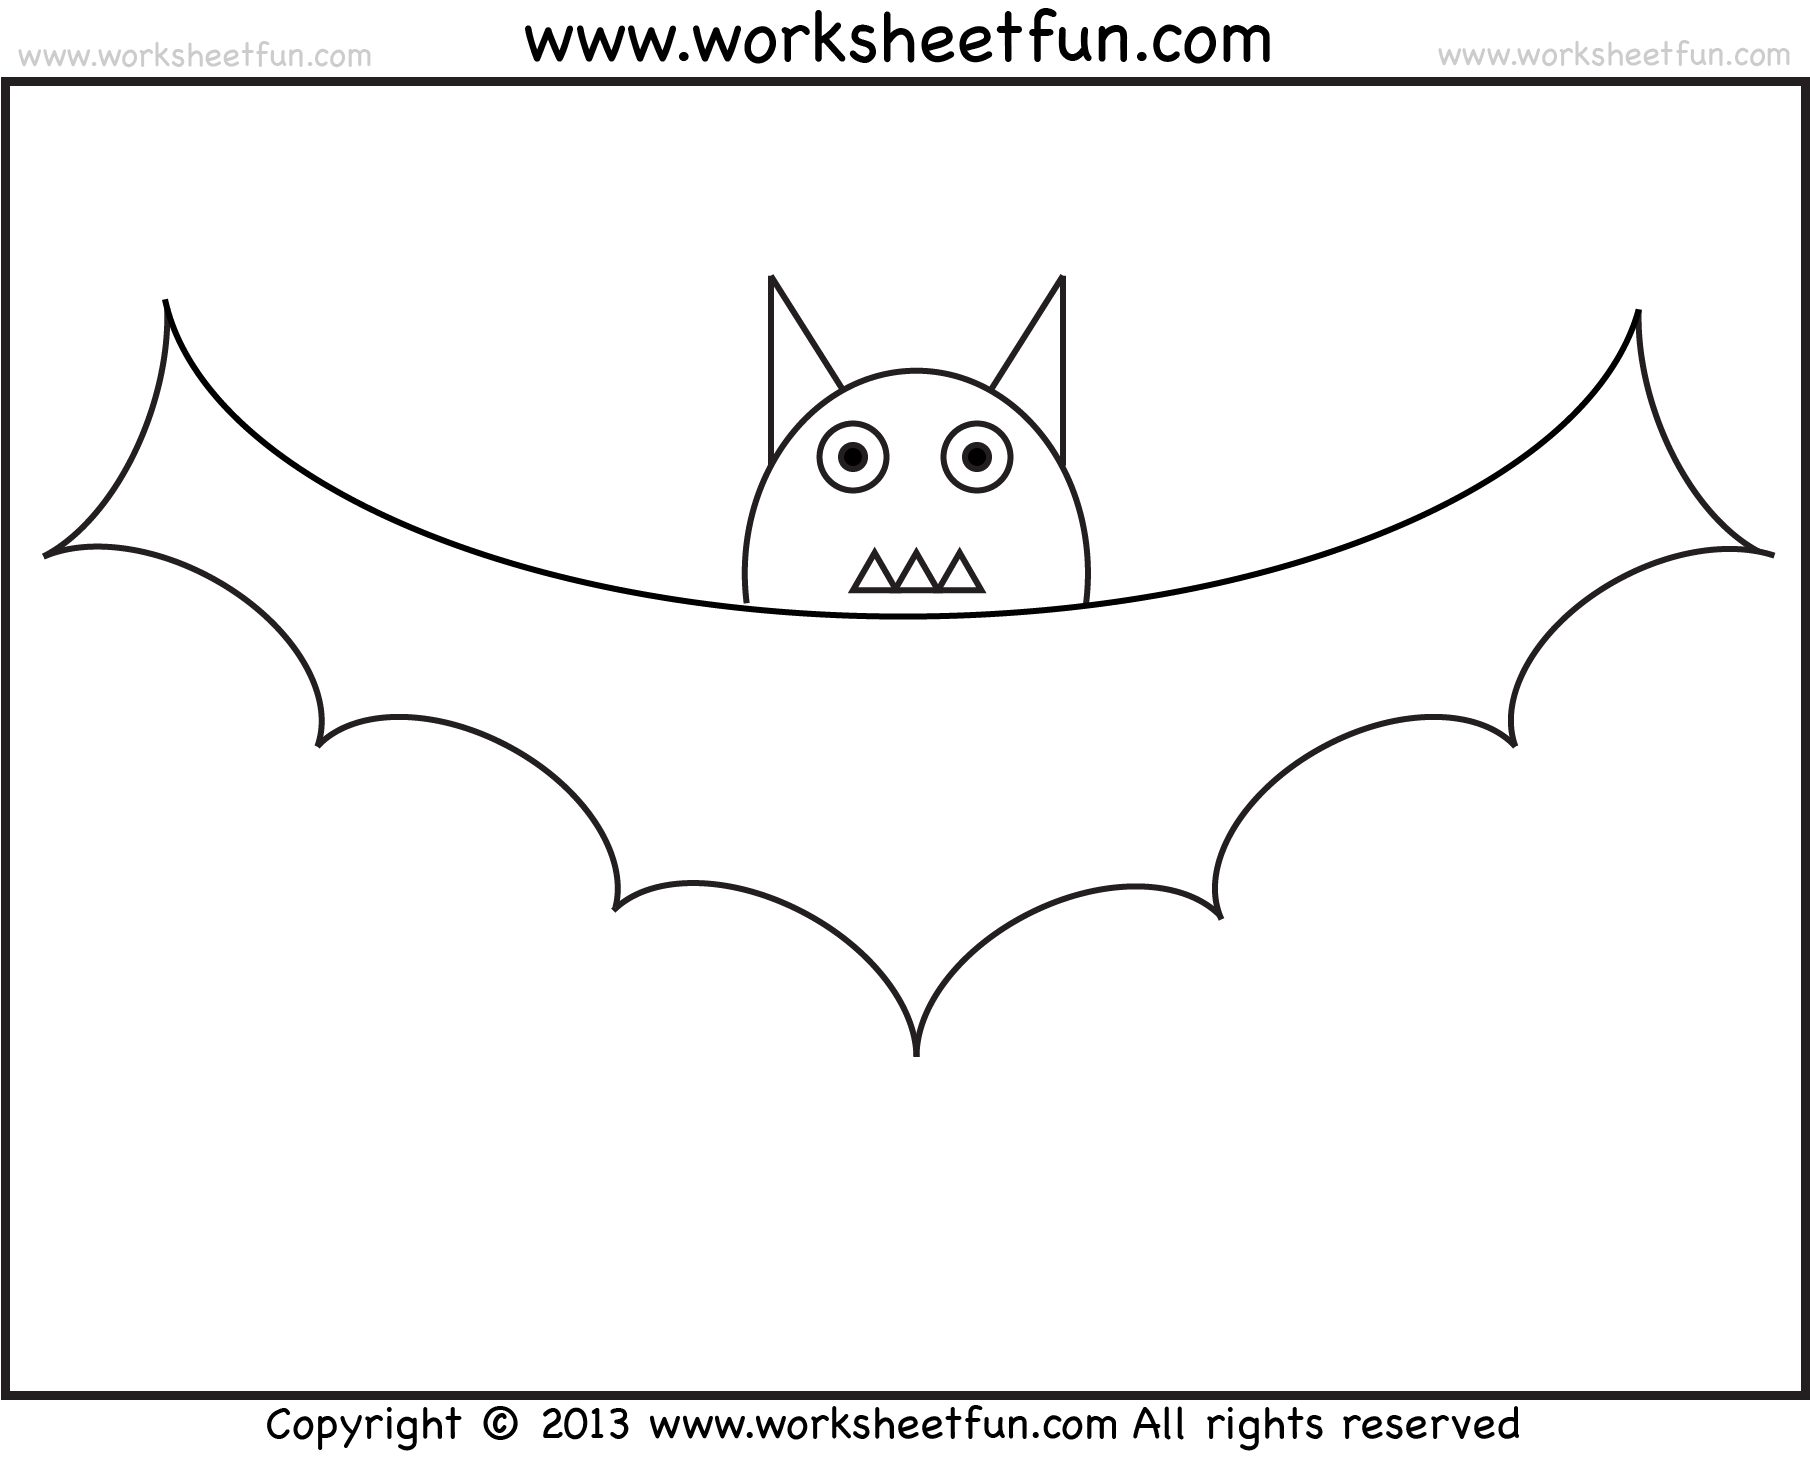 Bat Tracing And Coloring 2 Halloween Worksheets Free